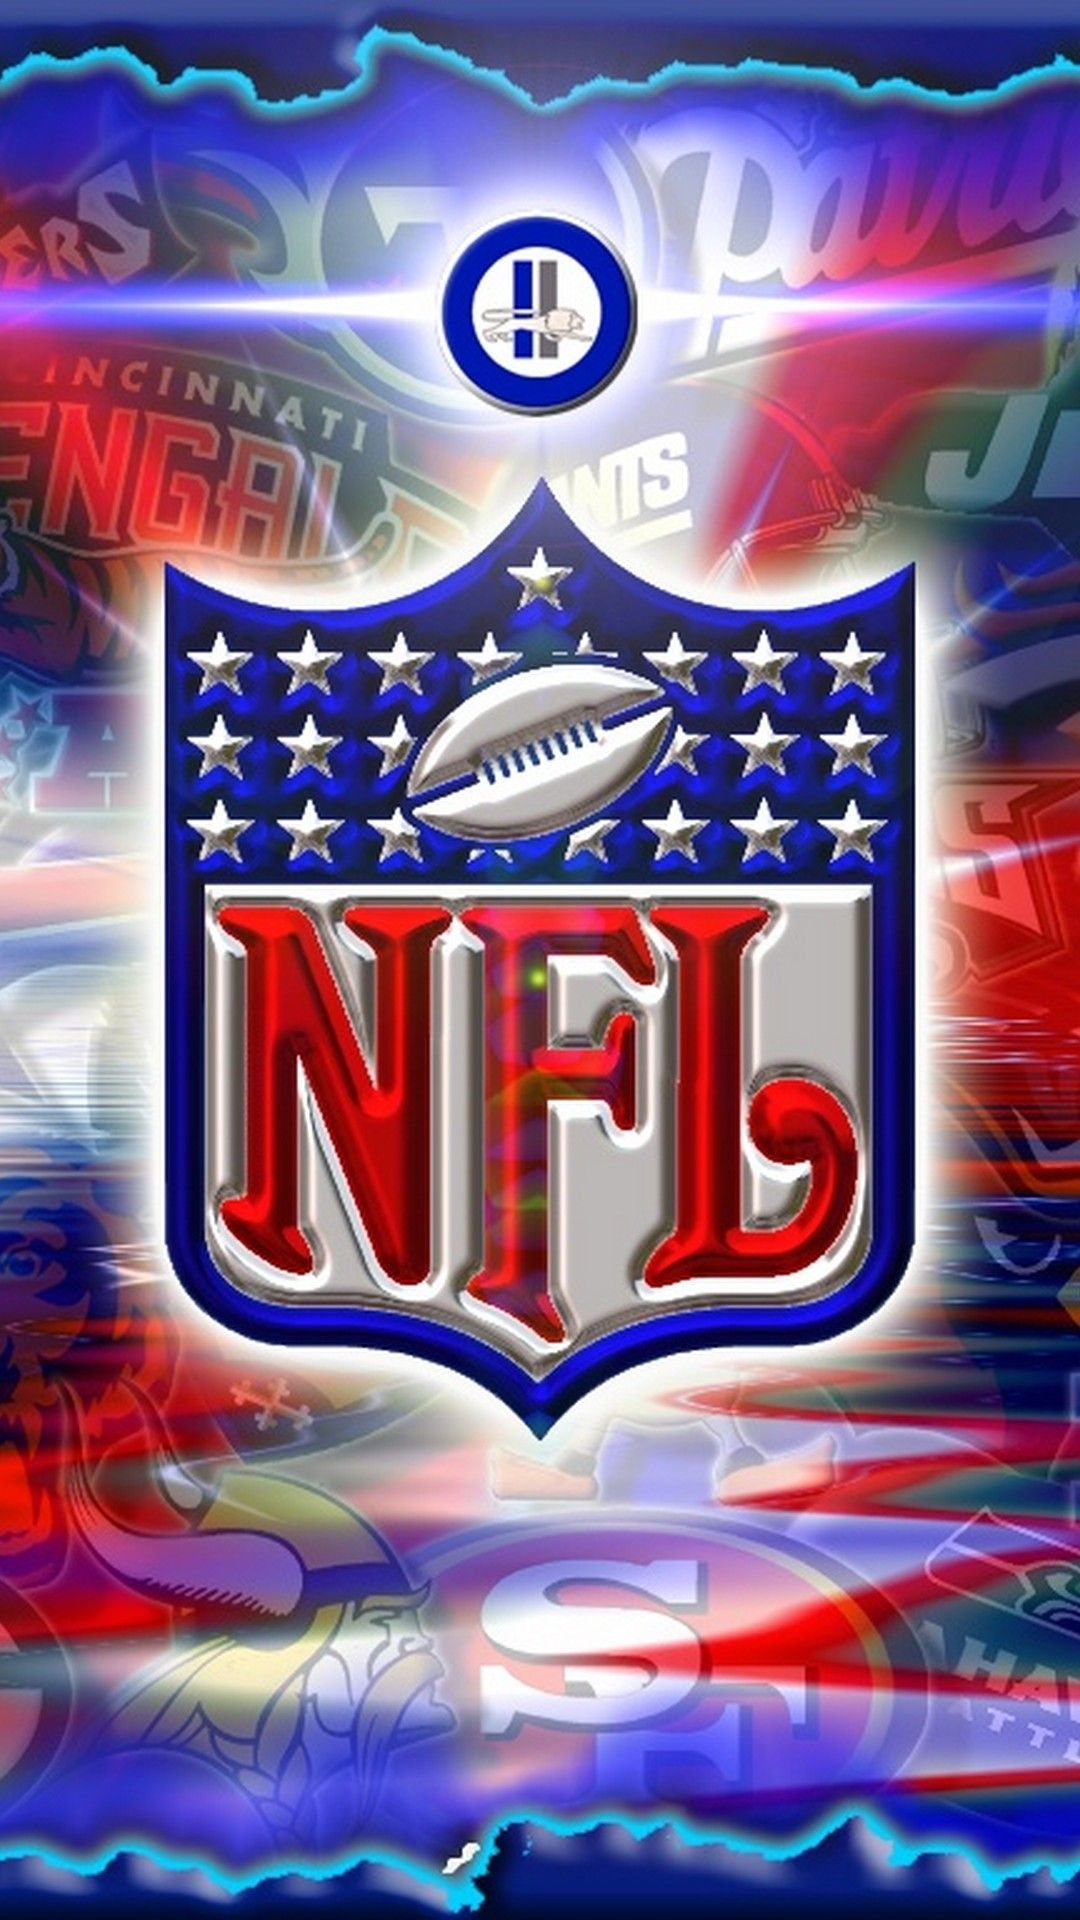 Nfl Wallpapers Nfl Football Wallpaper Football Wallpaper Nfl